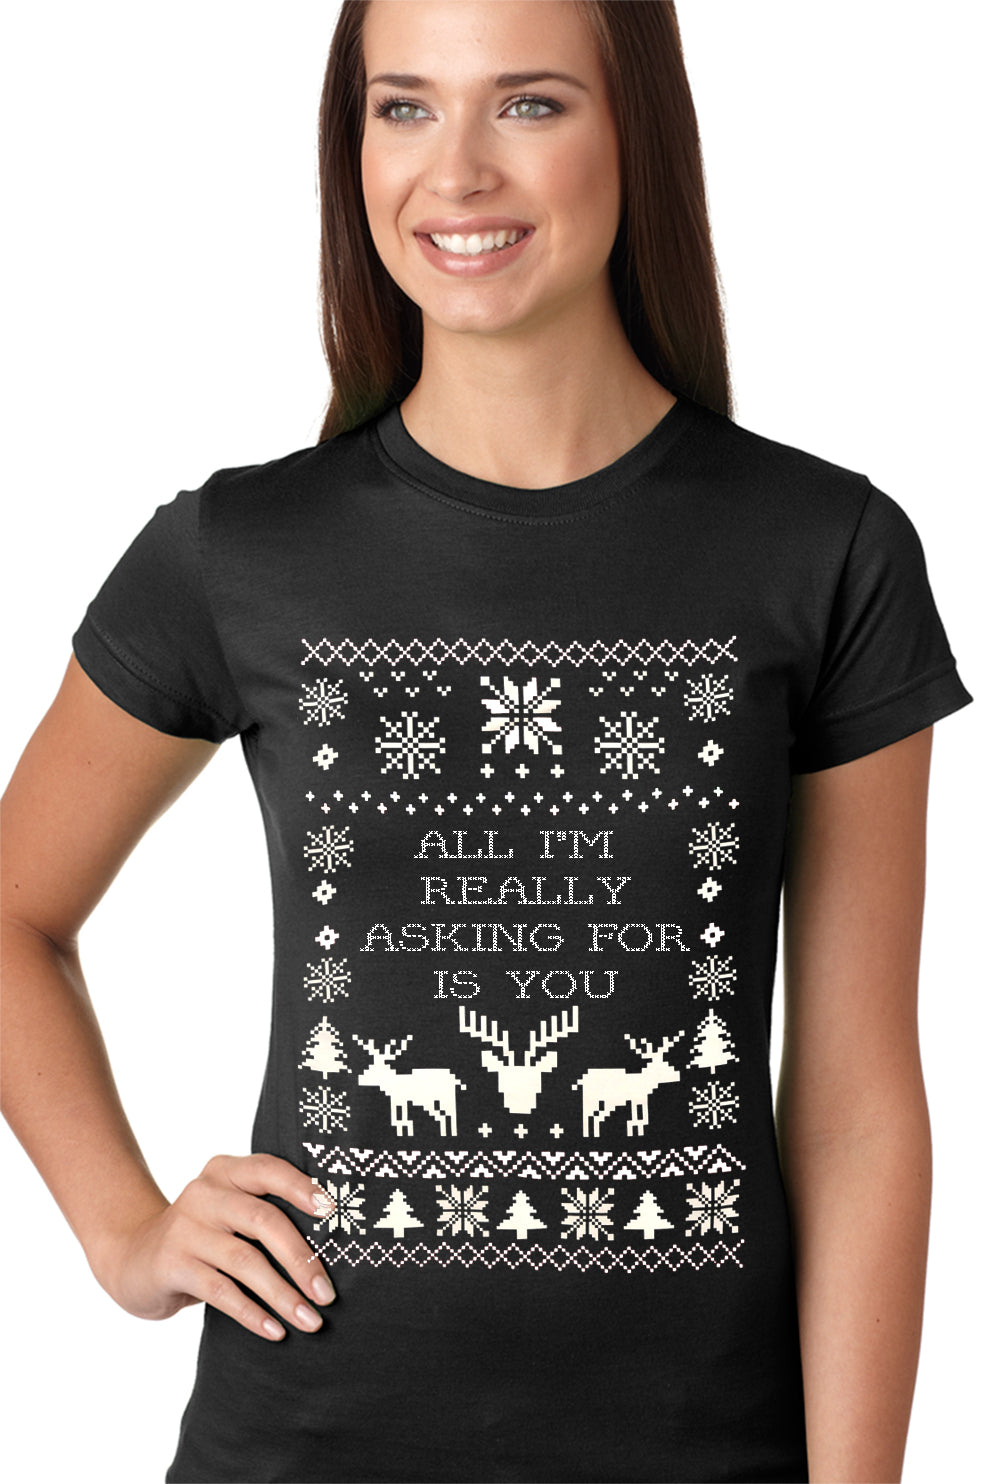 All I'm Really Asking For Is You Ugly Christmas Girls T-shirt Black